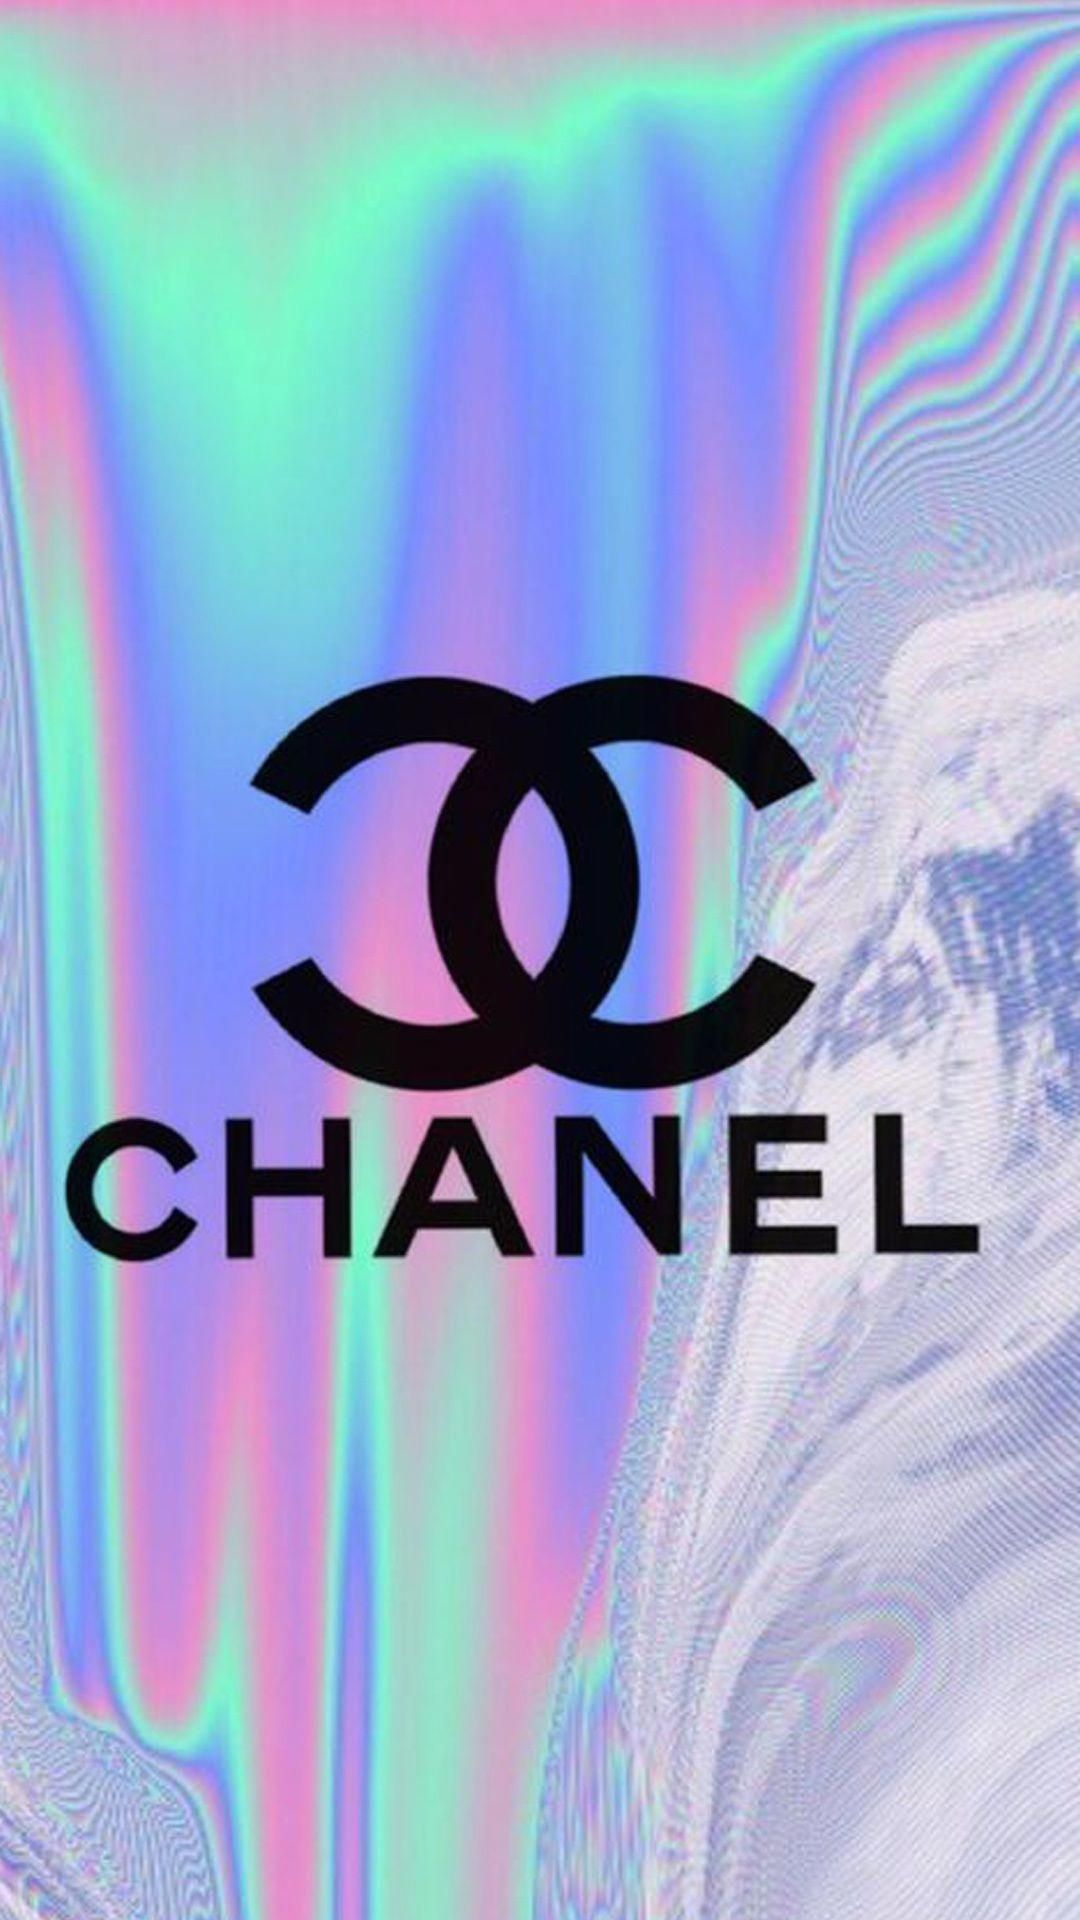 Paris Chanel Wallpapers Reeseybelle In 2020 Chanel Wallpapers Iphone Wallpaper Tumblr Aesthetic Chanel Wall Art